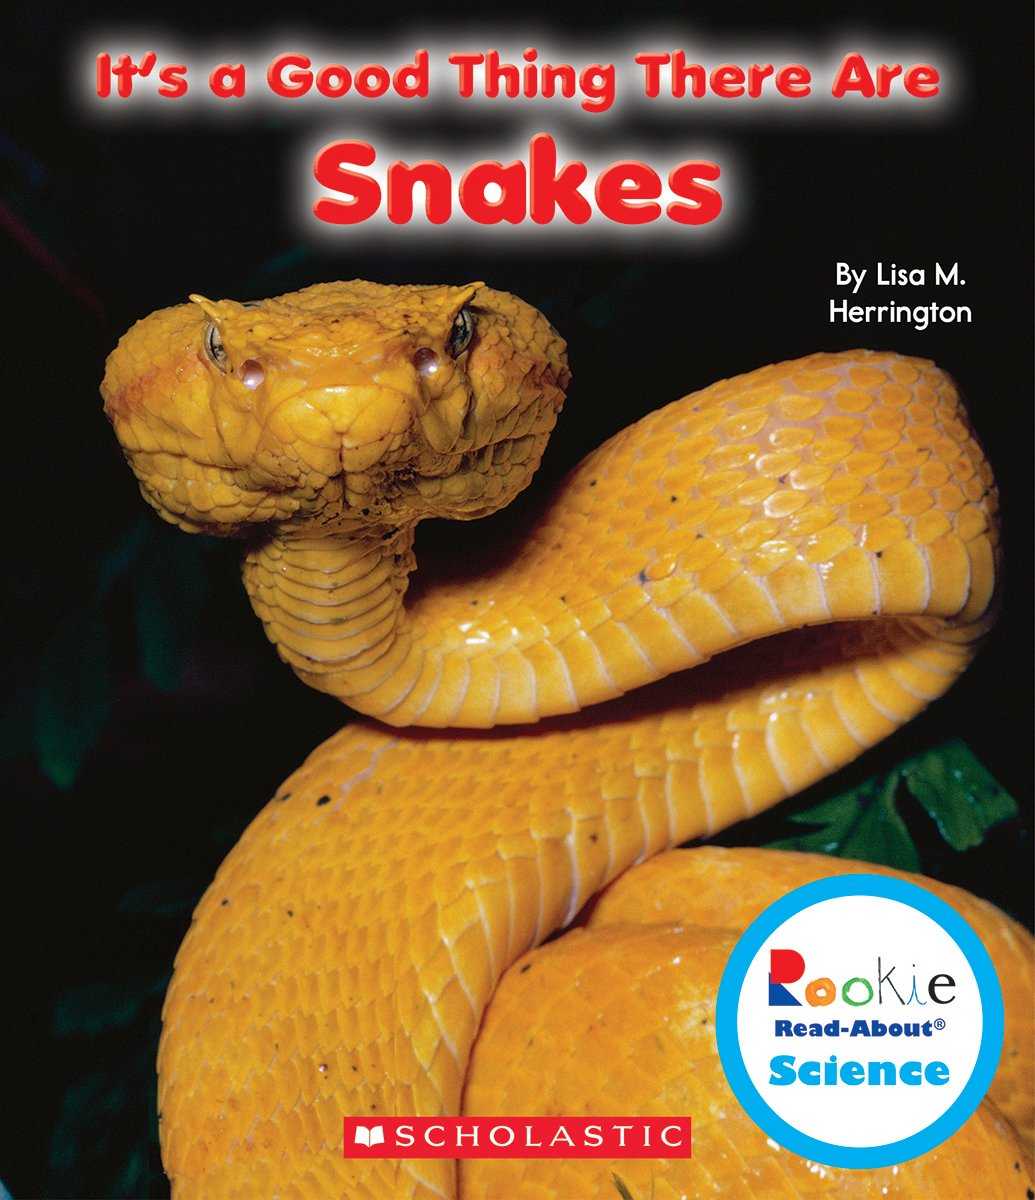 Amazon.com: It's a Good Thing There Are Snakes (Rookie Read-About Science ( Paperback)) (9780531228333): Lisa M Herrington: Books